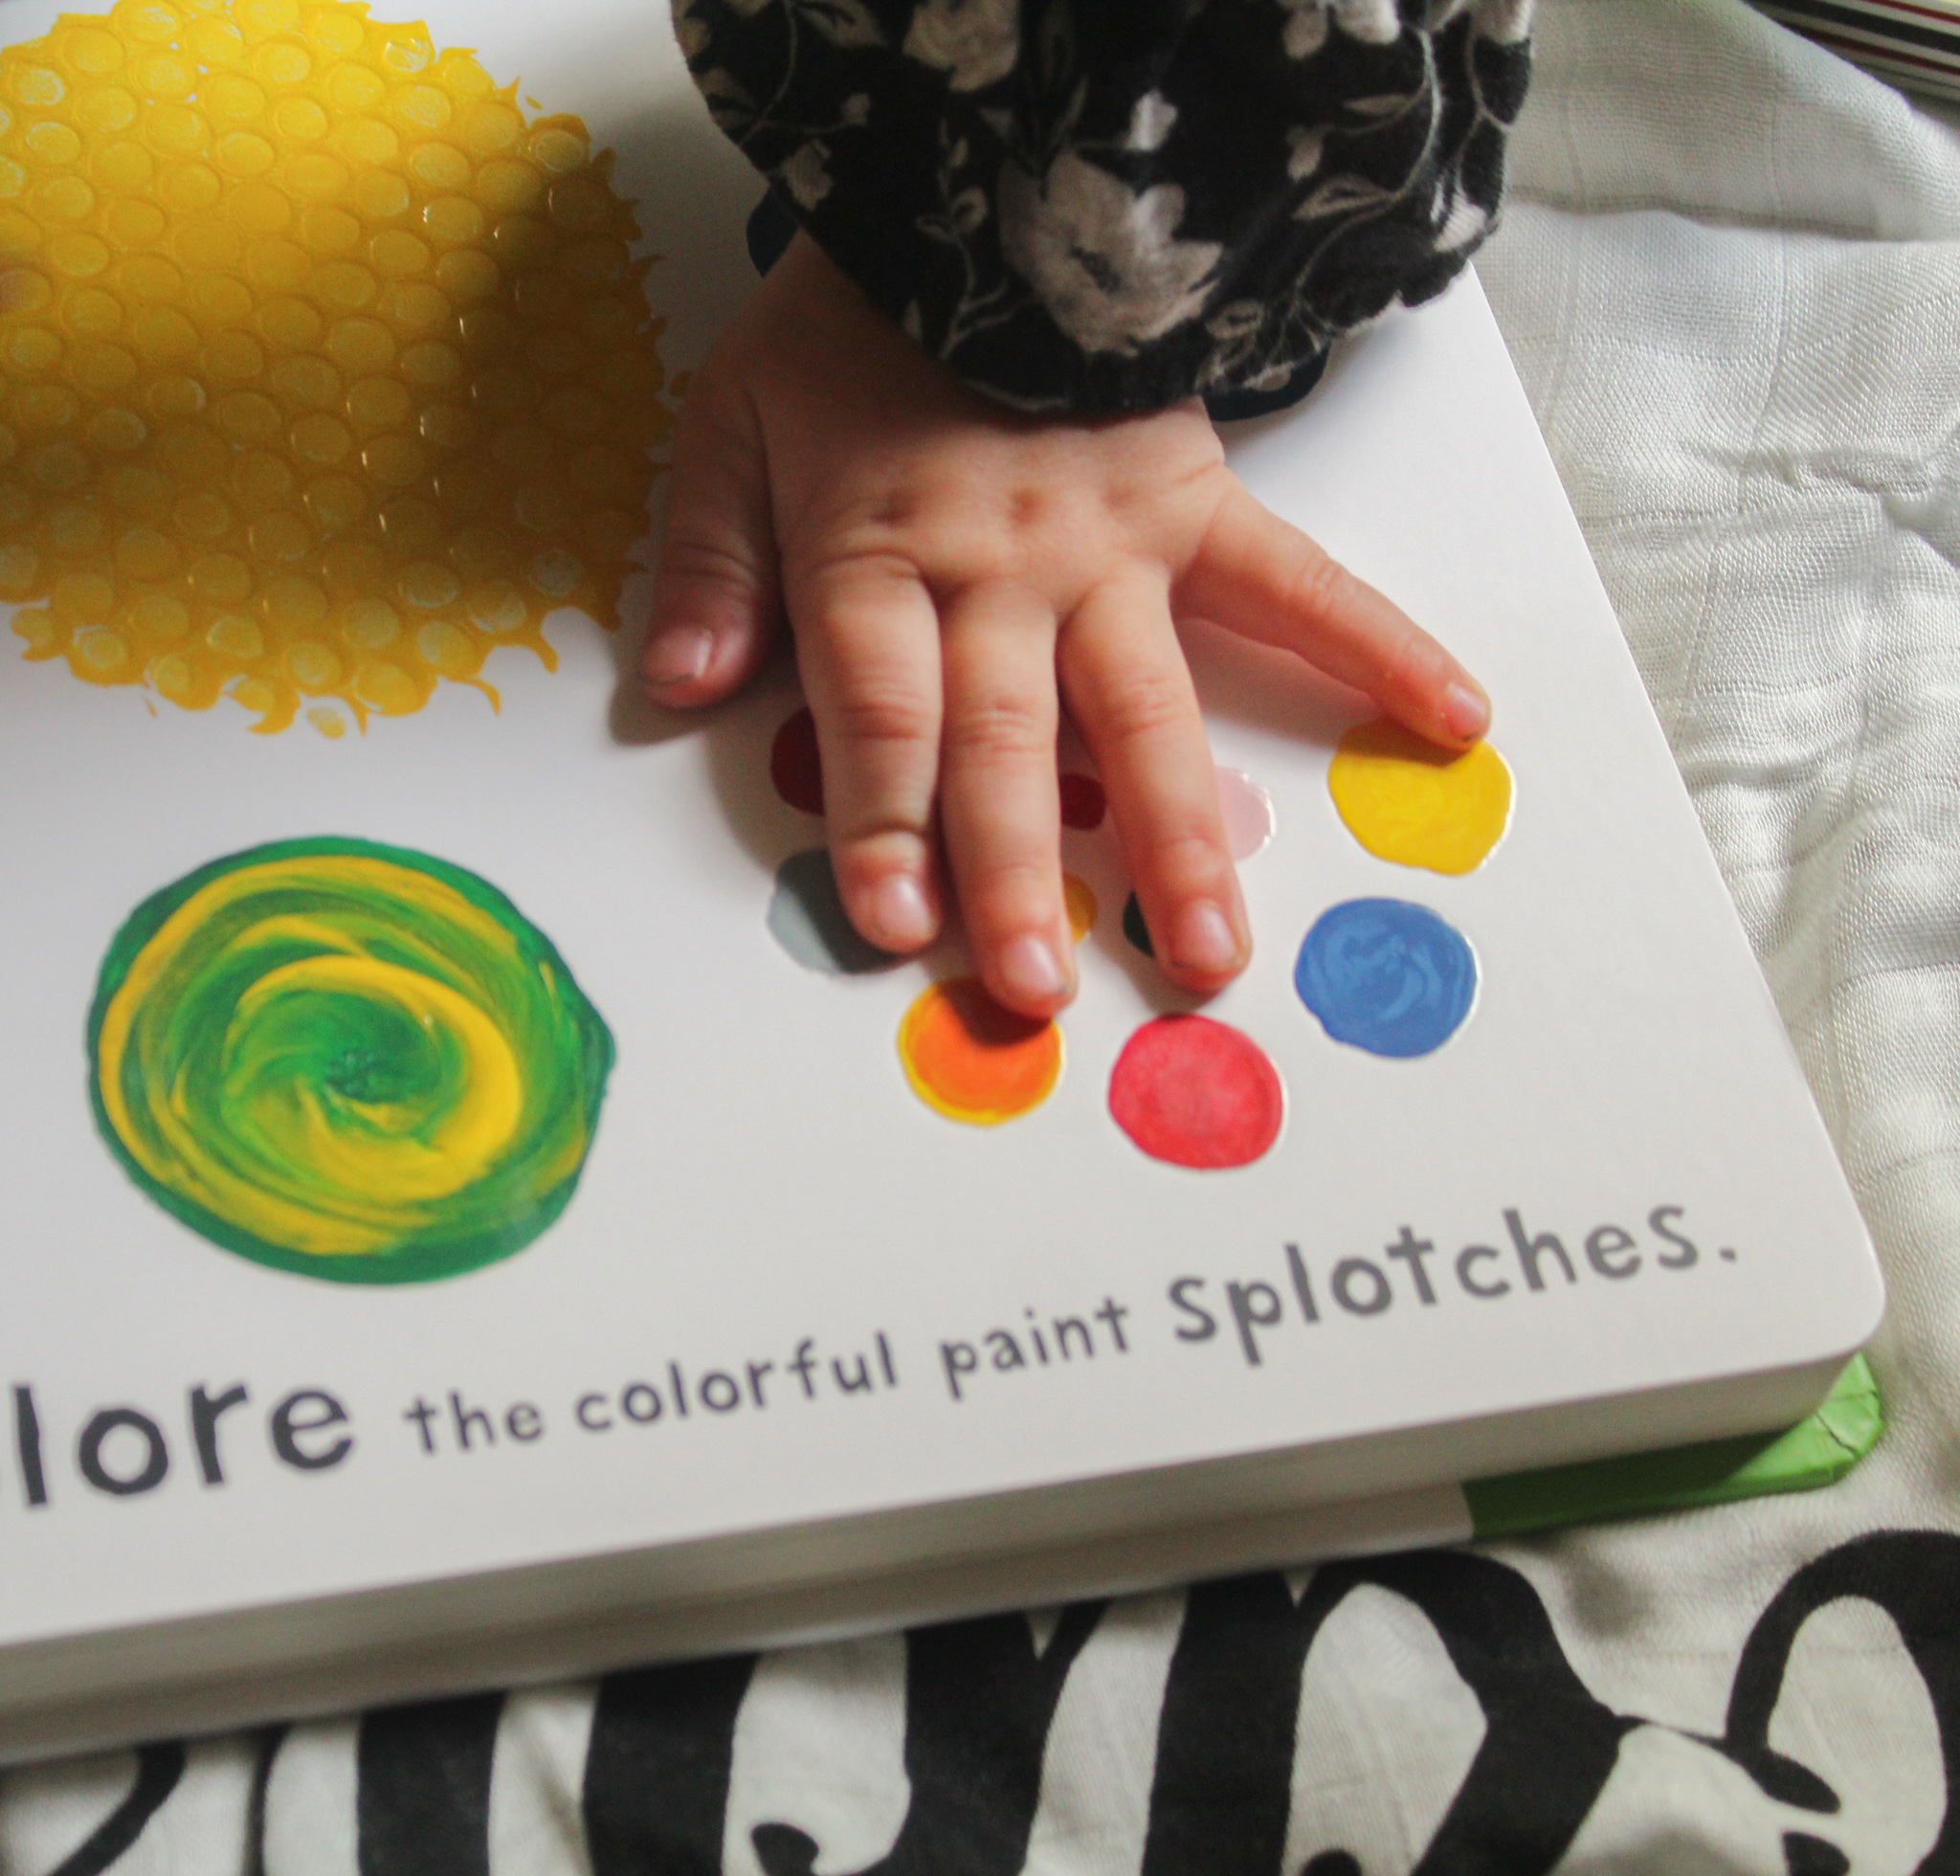 Homeschooling with a toddler? Tricky, but doable! Here are my best tips for keeping a toddler entertained while teaching older kids.